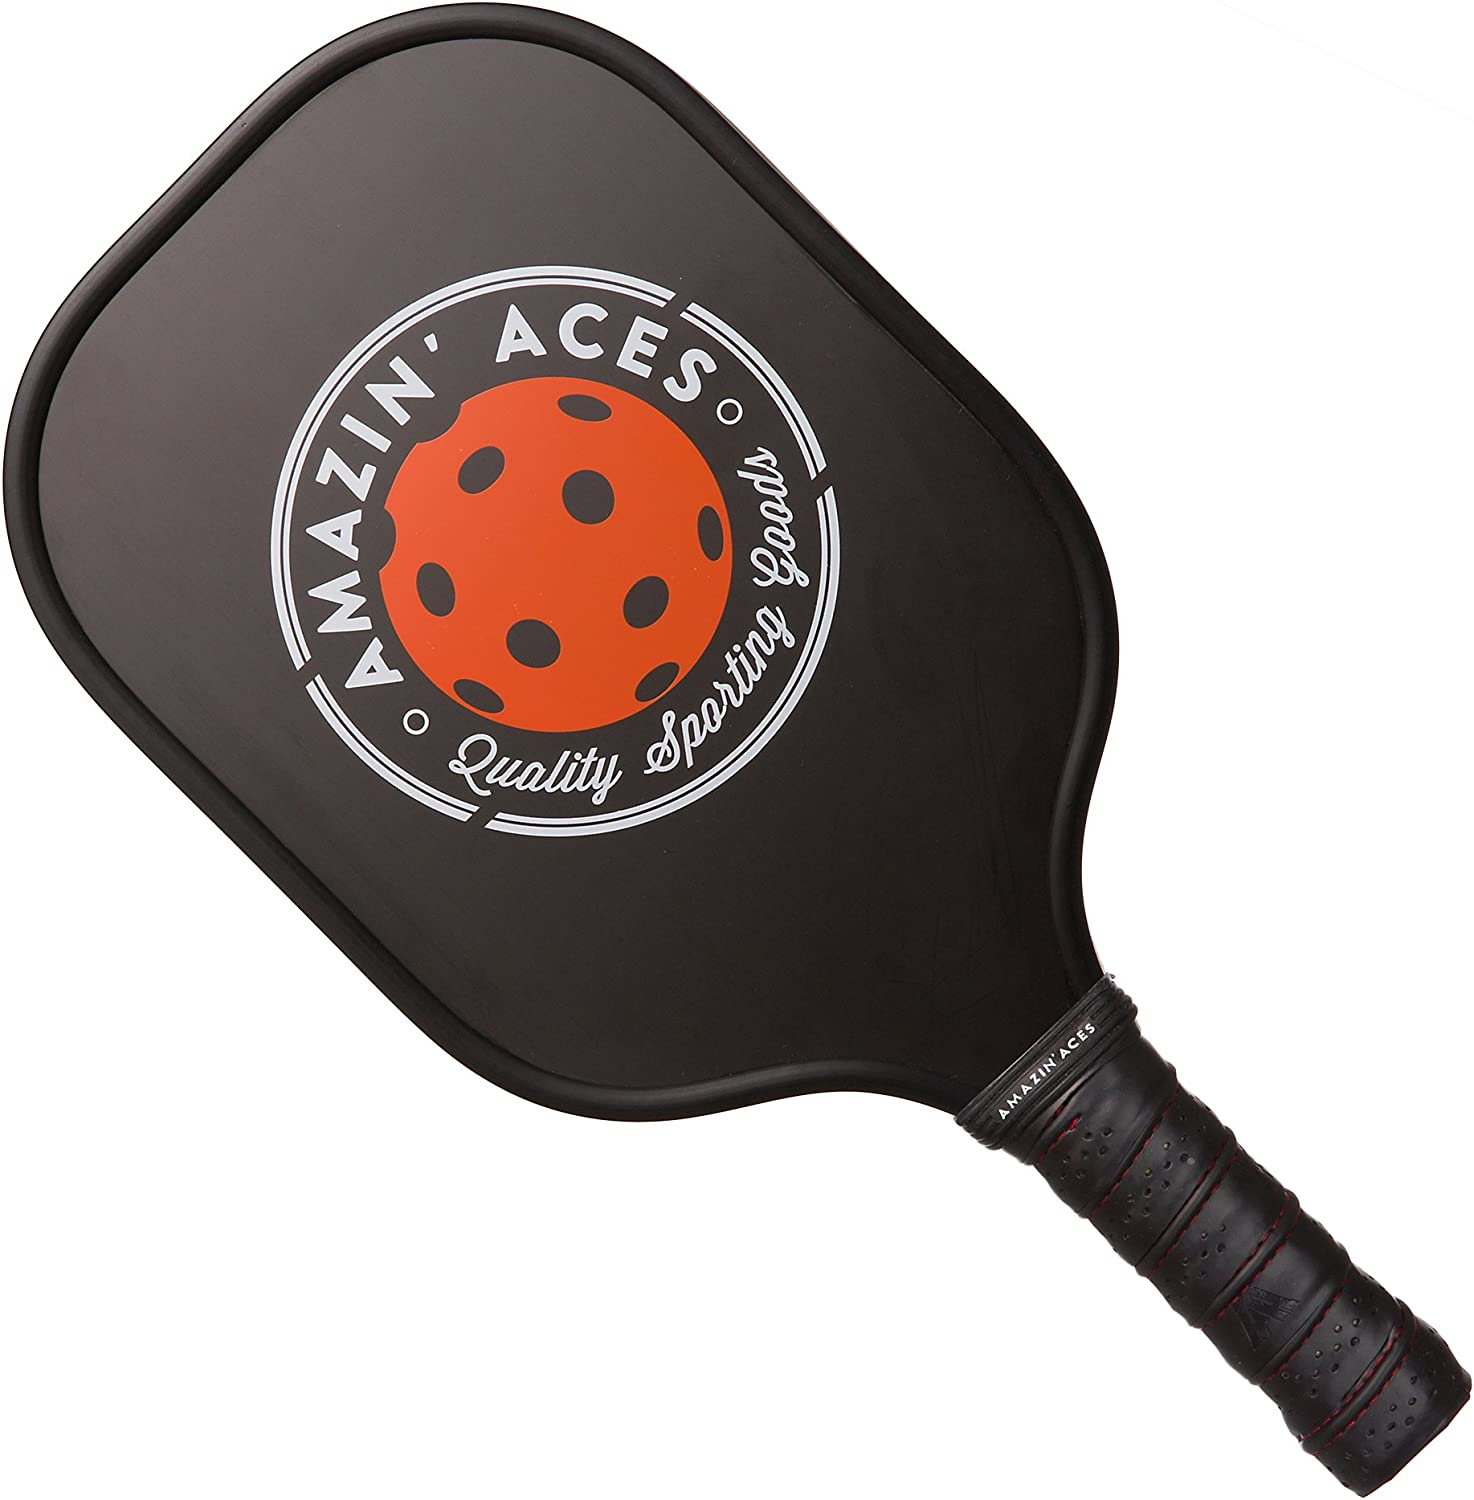 Amazin' Al sold out. Aces Classic Graphite Paddle Portland Mall Pickleball Feature Racket